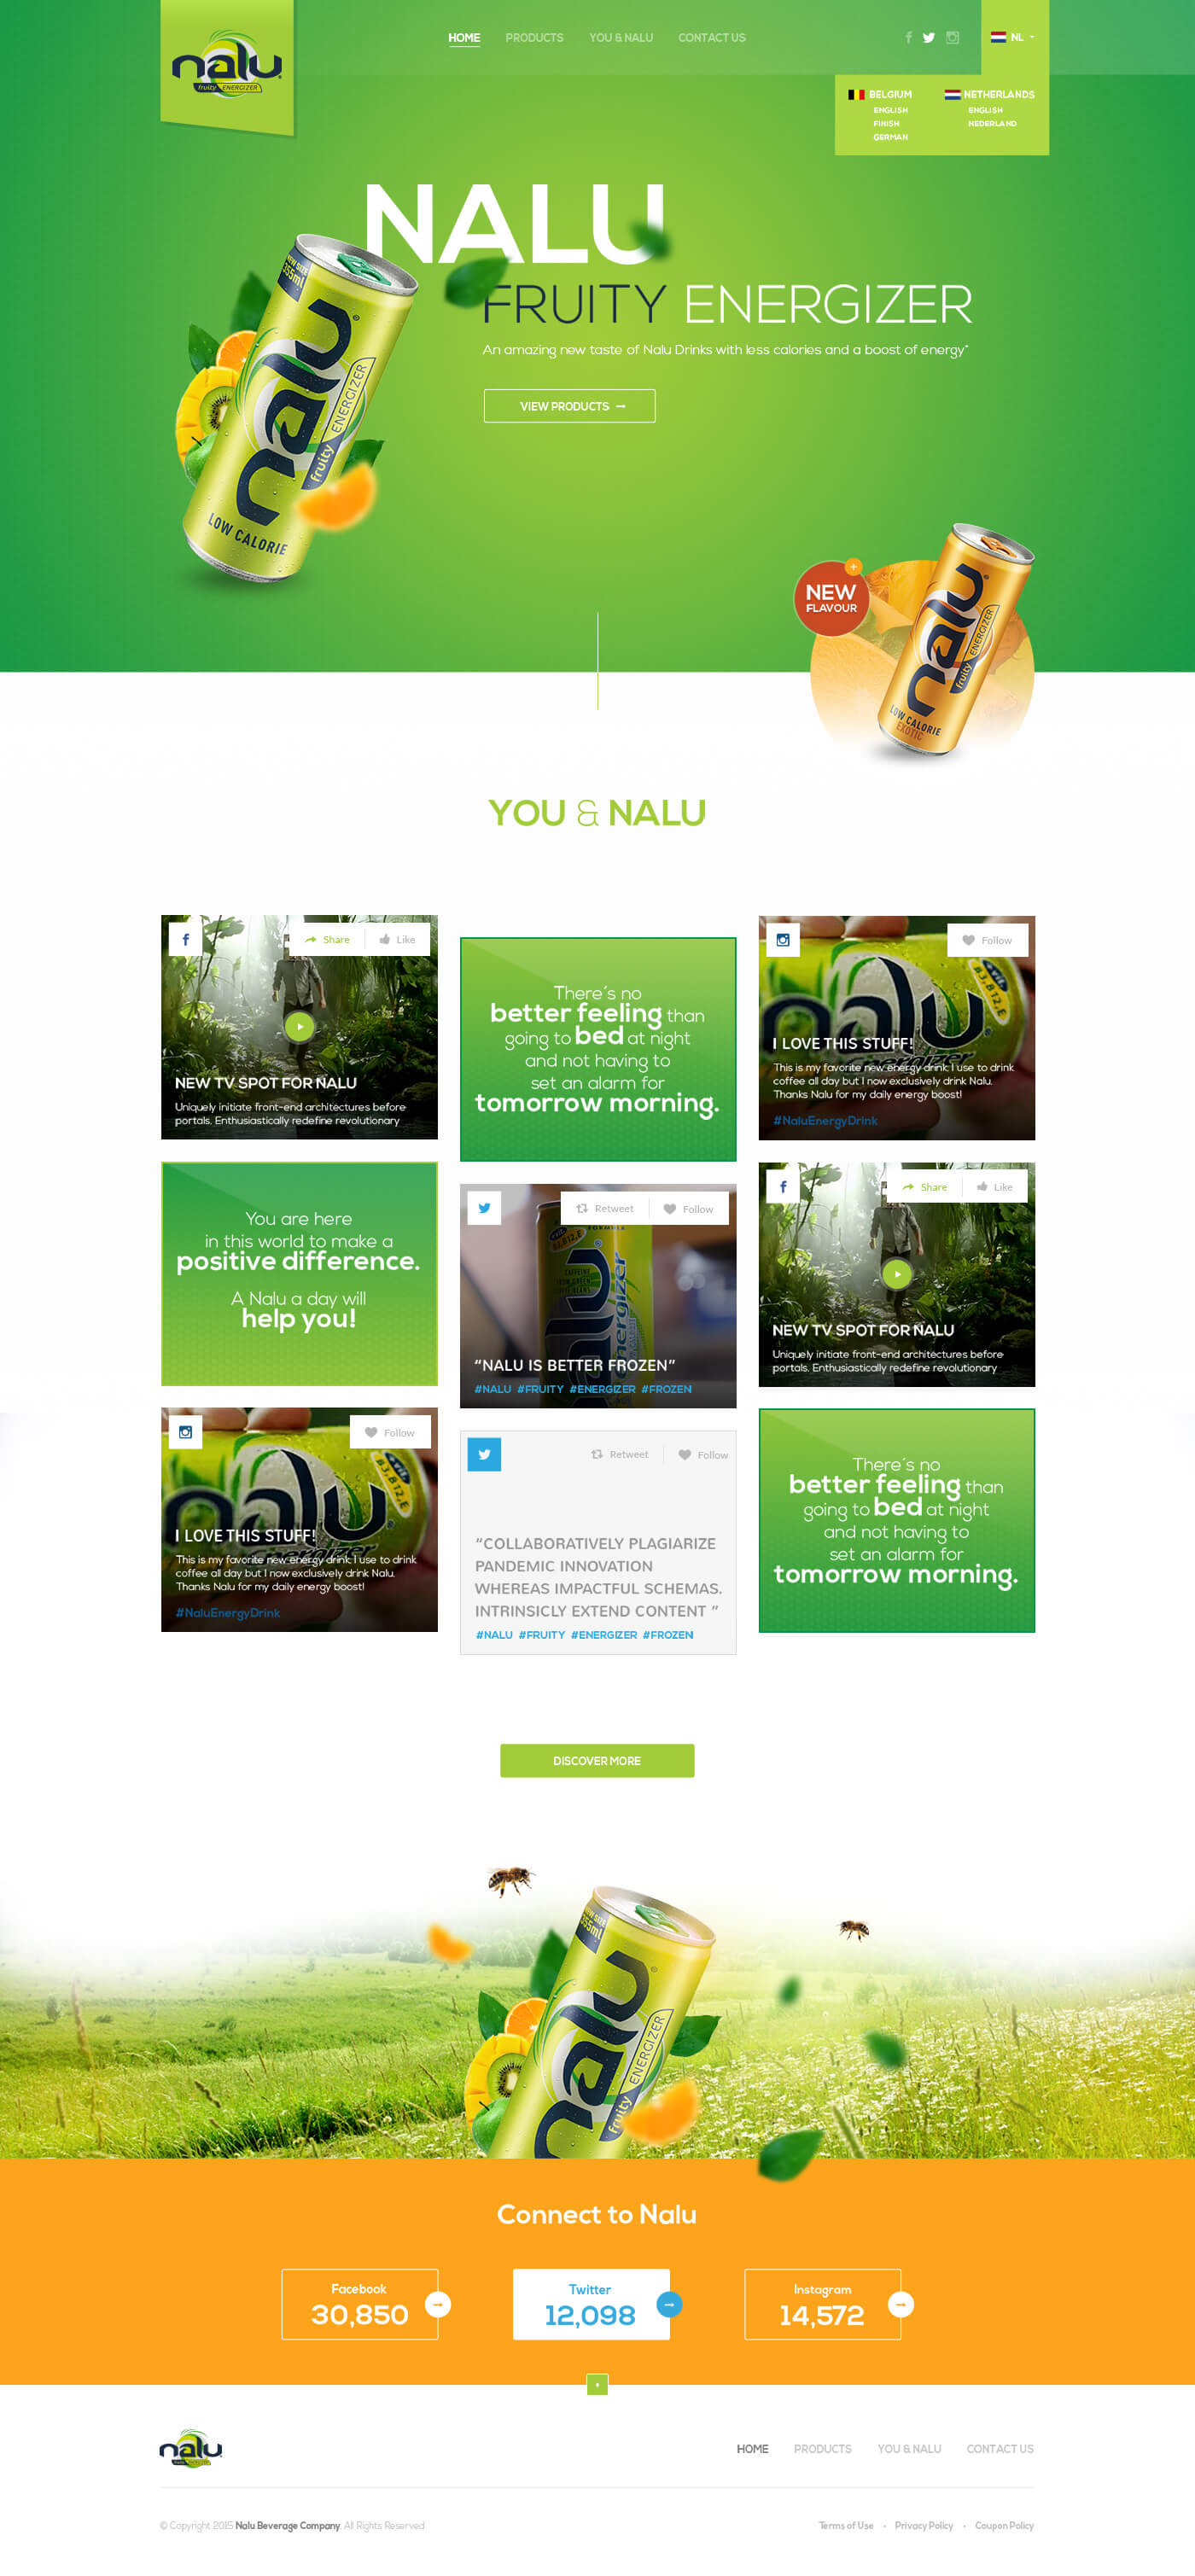 Nalu Energy, Ekko Media web design, video production and marketing